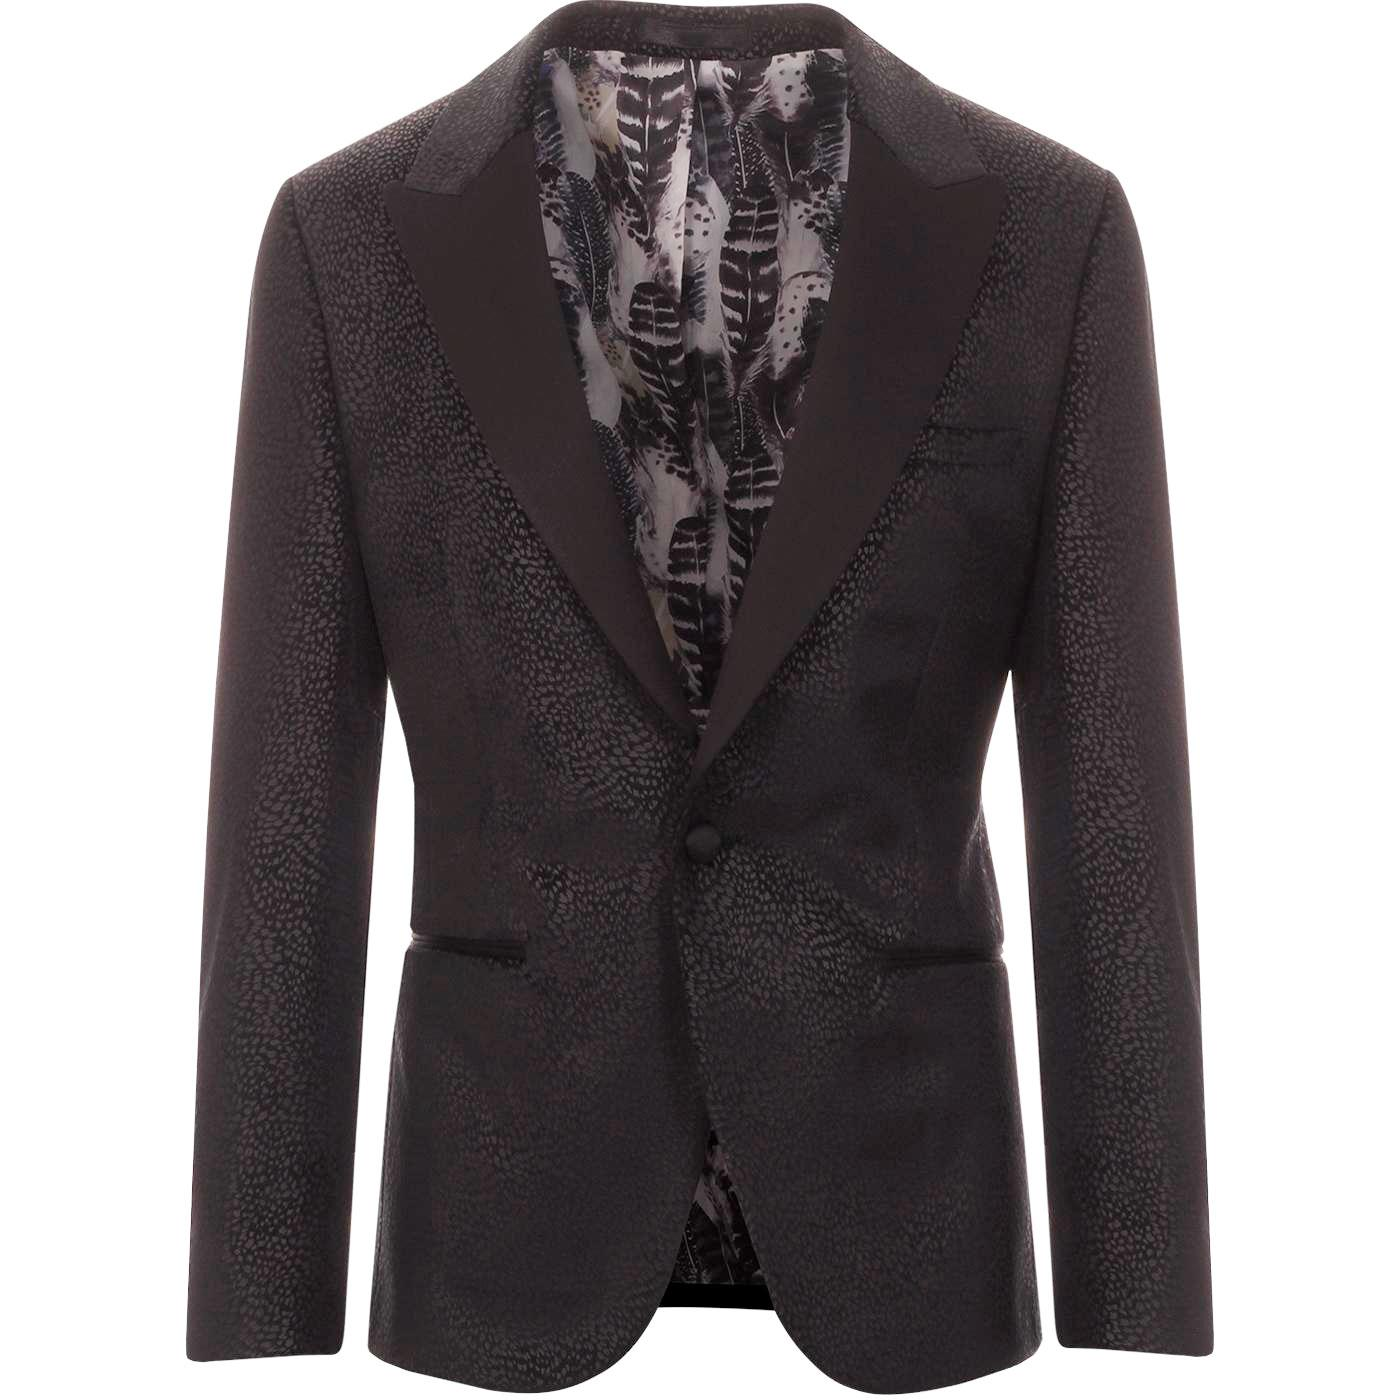 GIBSON LONDON Retro Velvet Jacquard Dinner Jacket